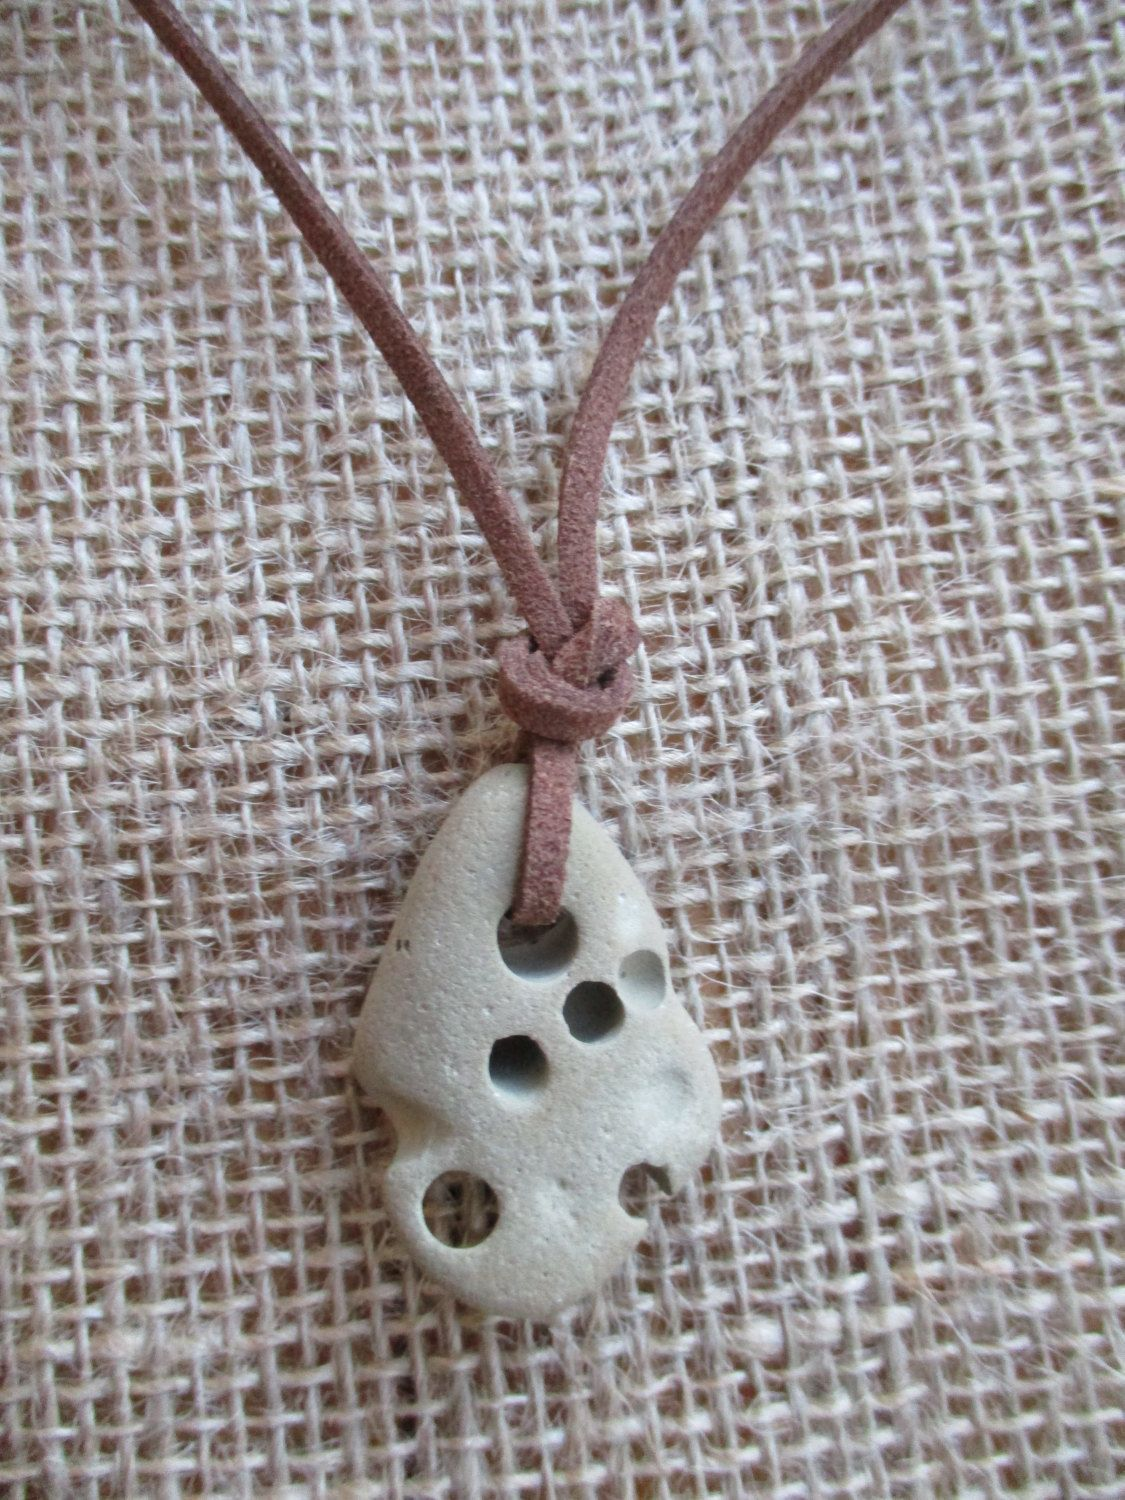 Free Shipping California Holey Stone Hag Stone Necklace Spiritual By Thetearsofmermaids On Etsy Hag Stones Rock Jewelry Stone Shop chinese jewelry of handmade silver earrings, necklaces, bracelets, rings of natural stones. pinterest